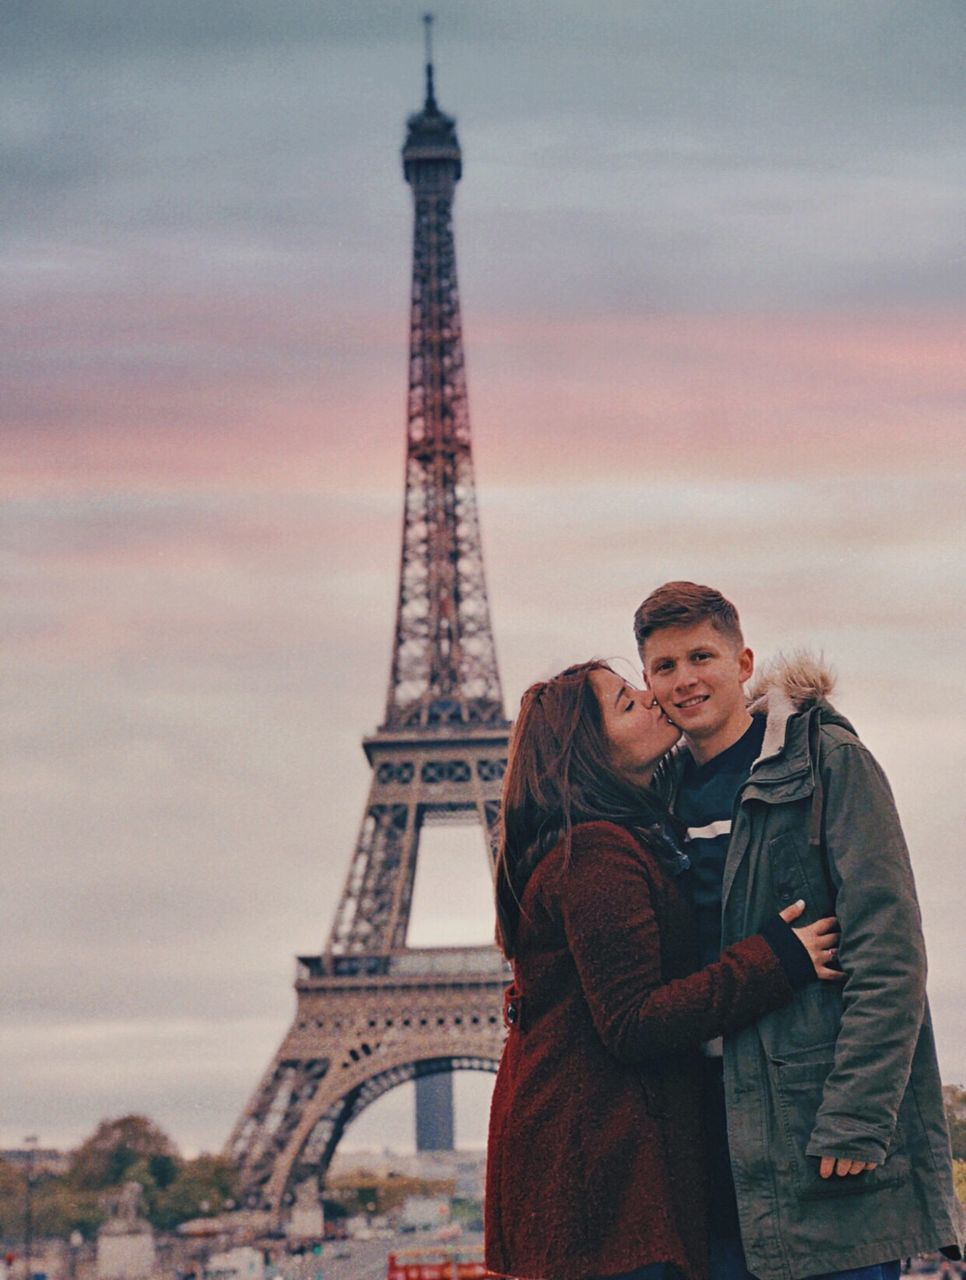 architecture, travel destinations, tower, two people, built structure, travel, young women, women, city, sky, young adult, tourism, lifestyles, young men, love, warm clothing, real people, couple - relationship, tall - high, positive emotion, outdoors